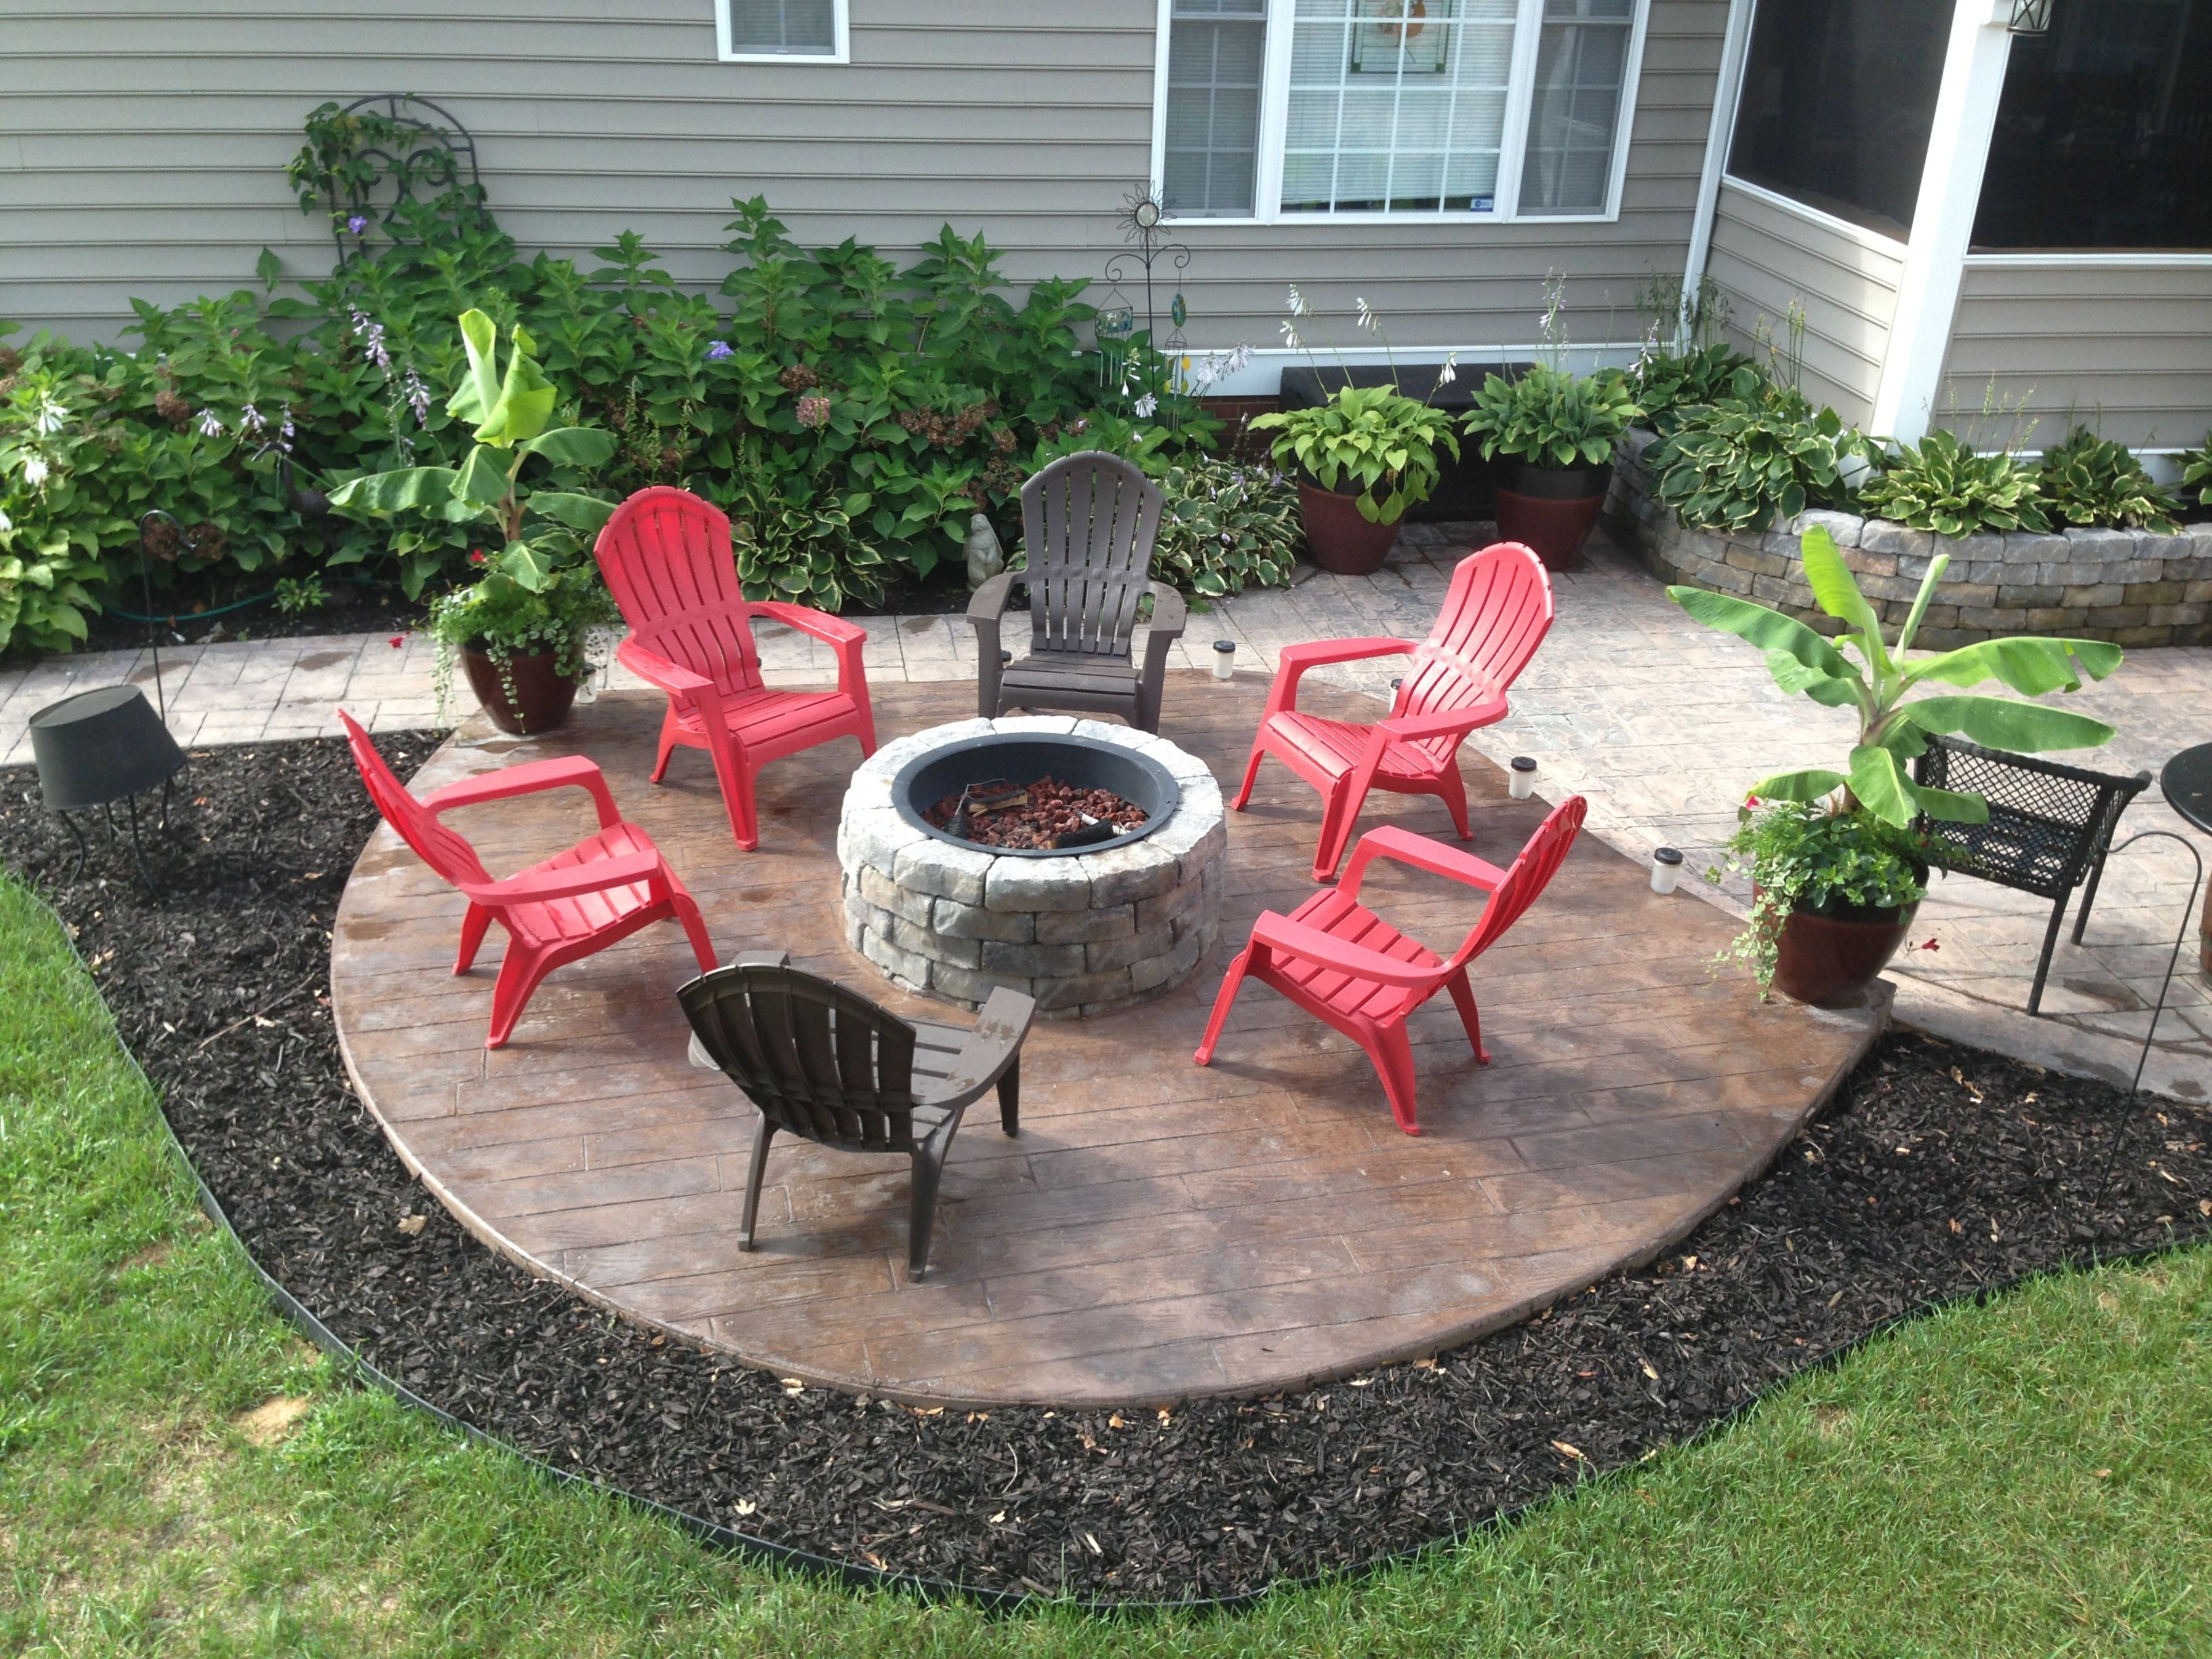 New Stamped Concrete Patio With Built In Fire Pit What A